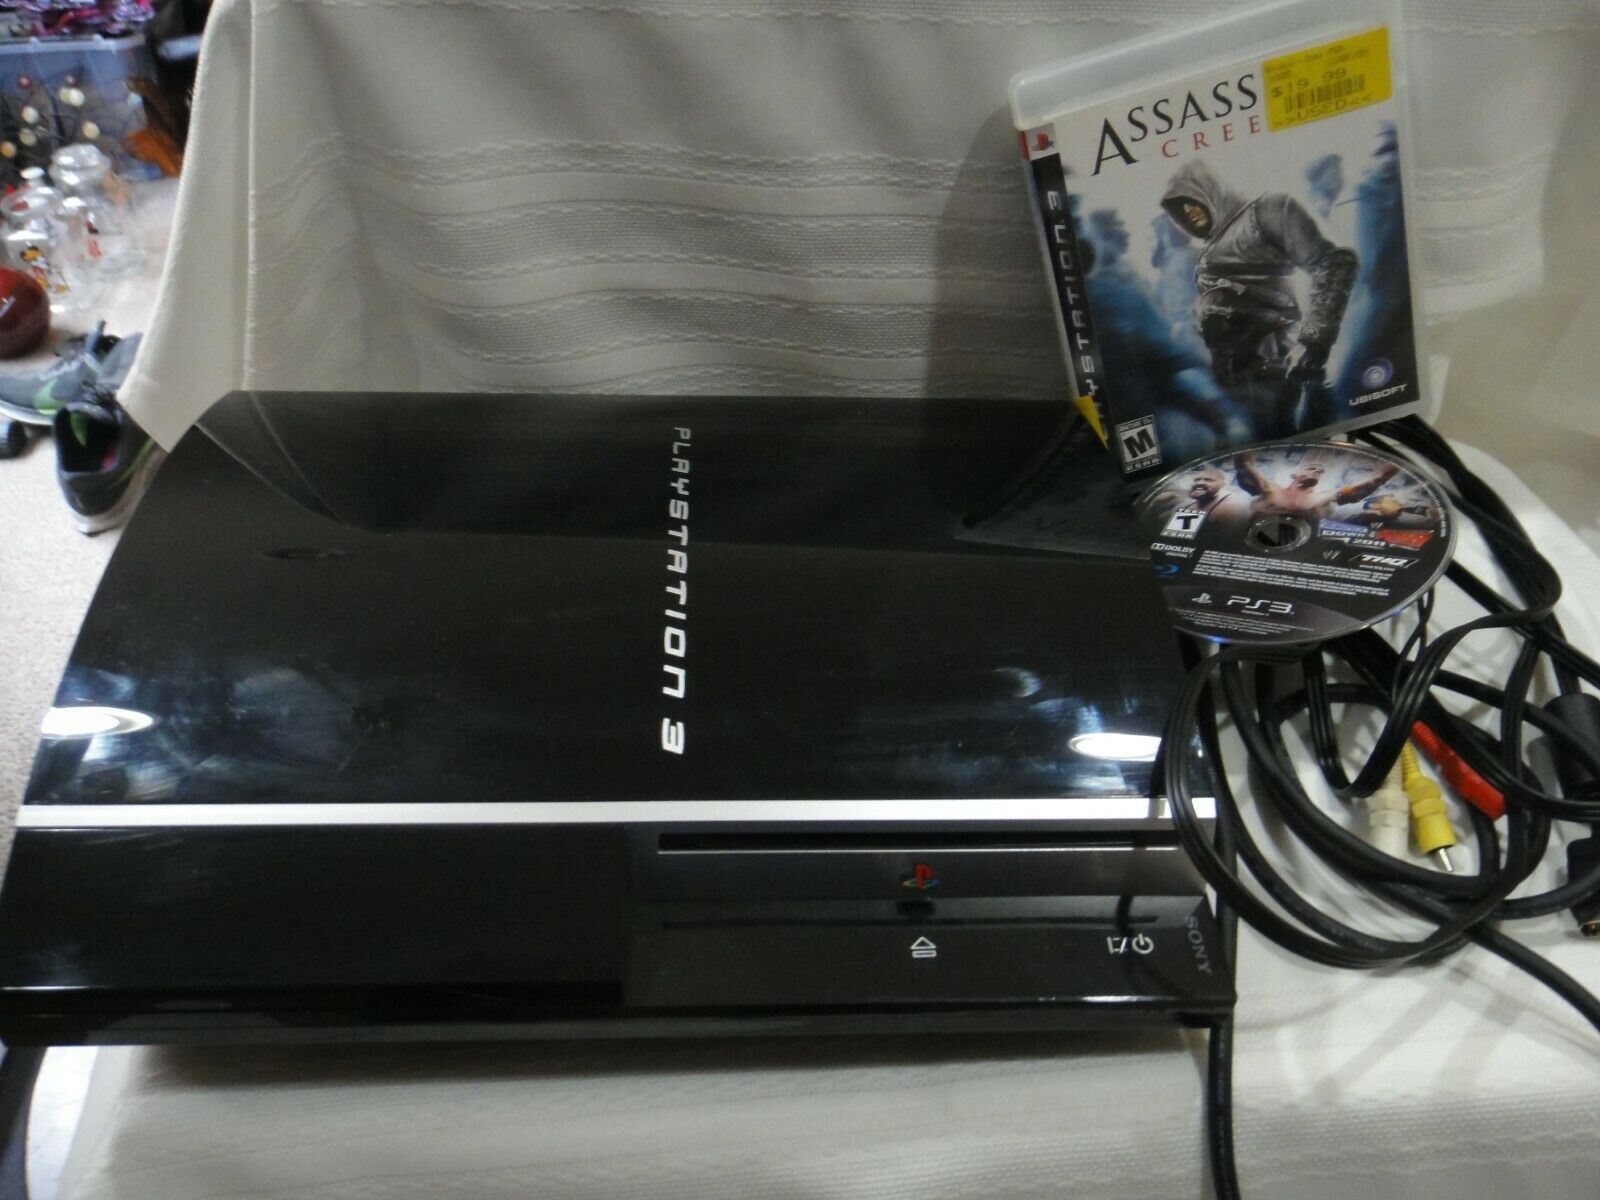 Sony Playstation PS3 FAT 80GB Console Bundle Games TESTED. (no controller)